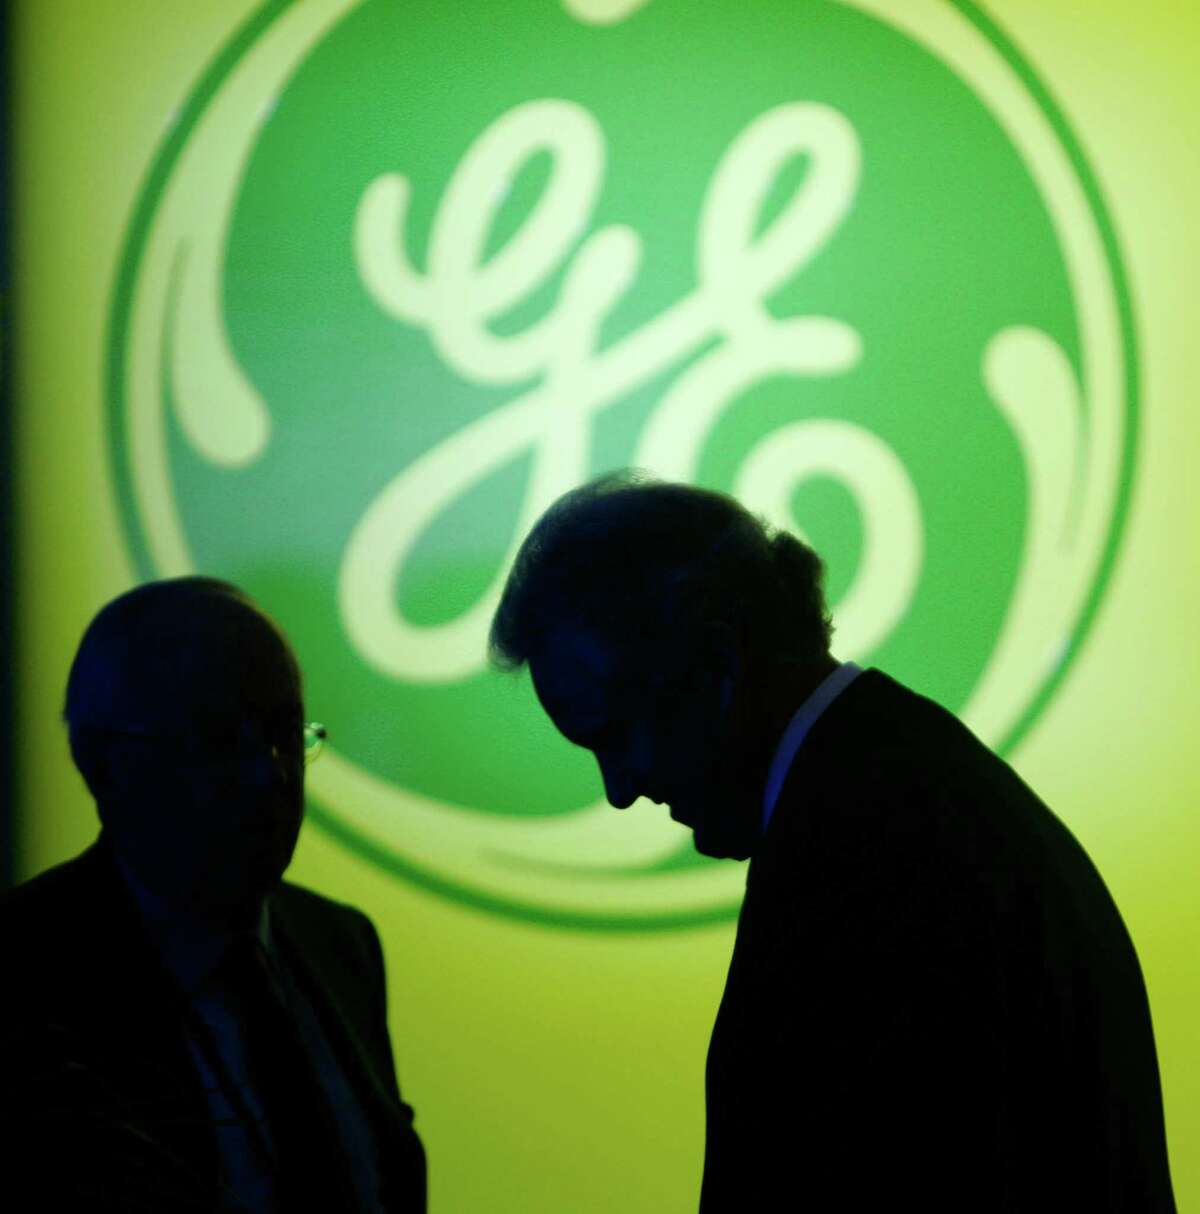 FILE - In this April 23, 2008, file photo, General Electric Co. CEO Jeff Immelt, right, waits for the start of the company's annual shareholders meeting in Erie, Pa. (AP Photo/Tony Dejak, File)